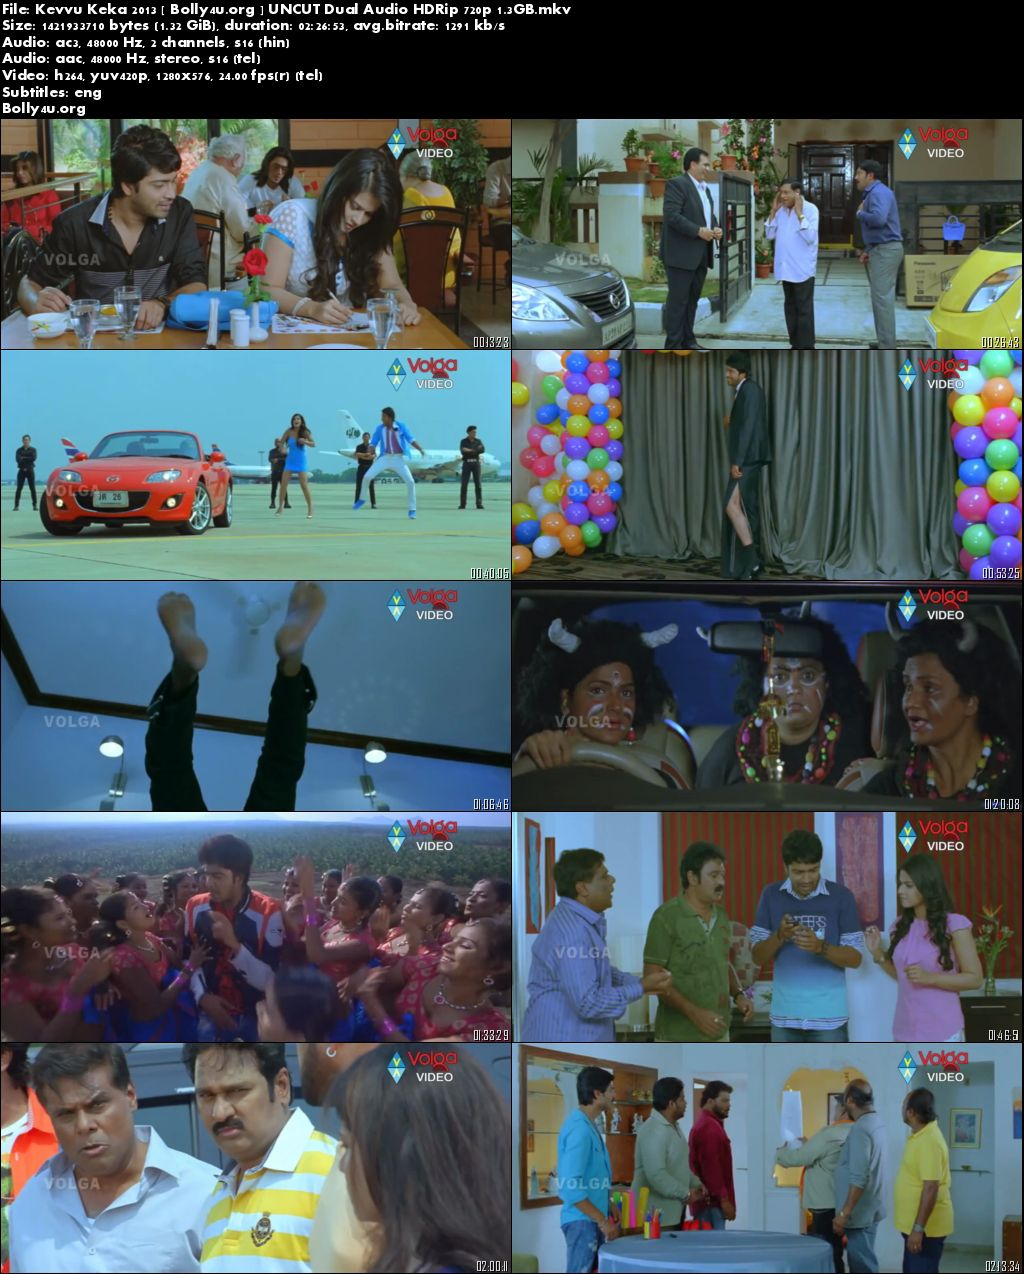 Kevvu Keka 2013 HDRip UNCUT Hindi Telugu Dual Audio 720p Download